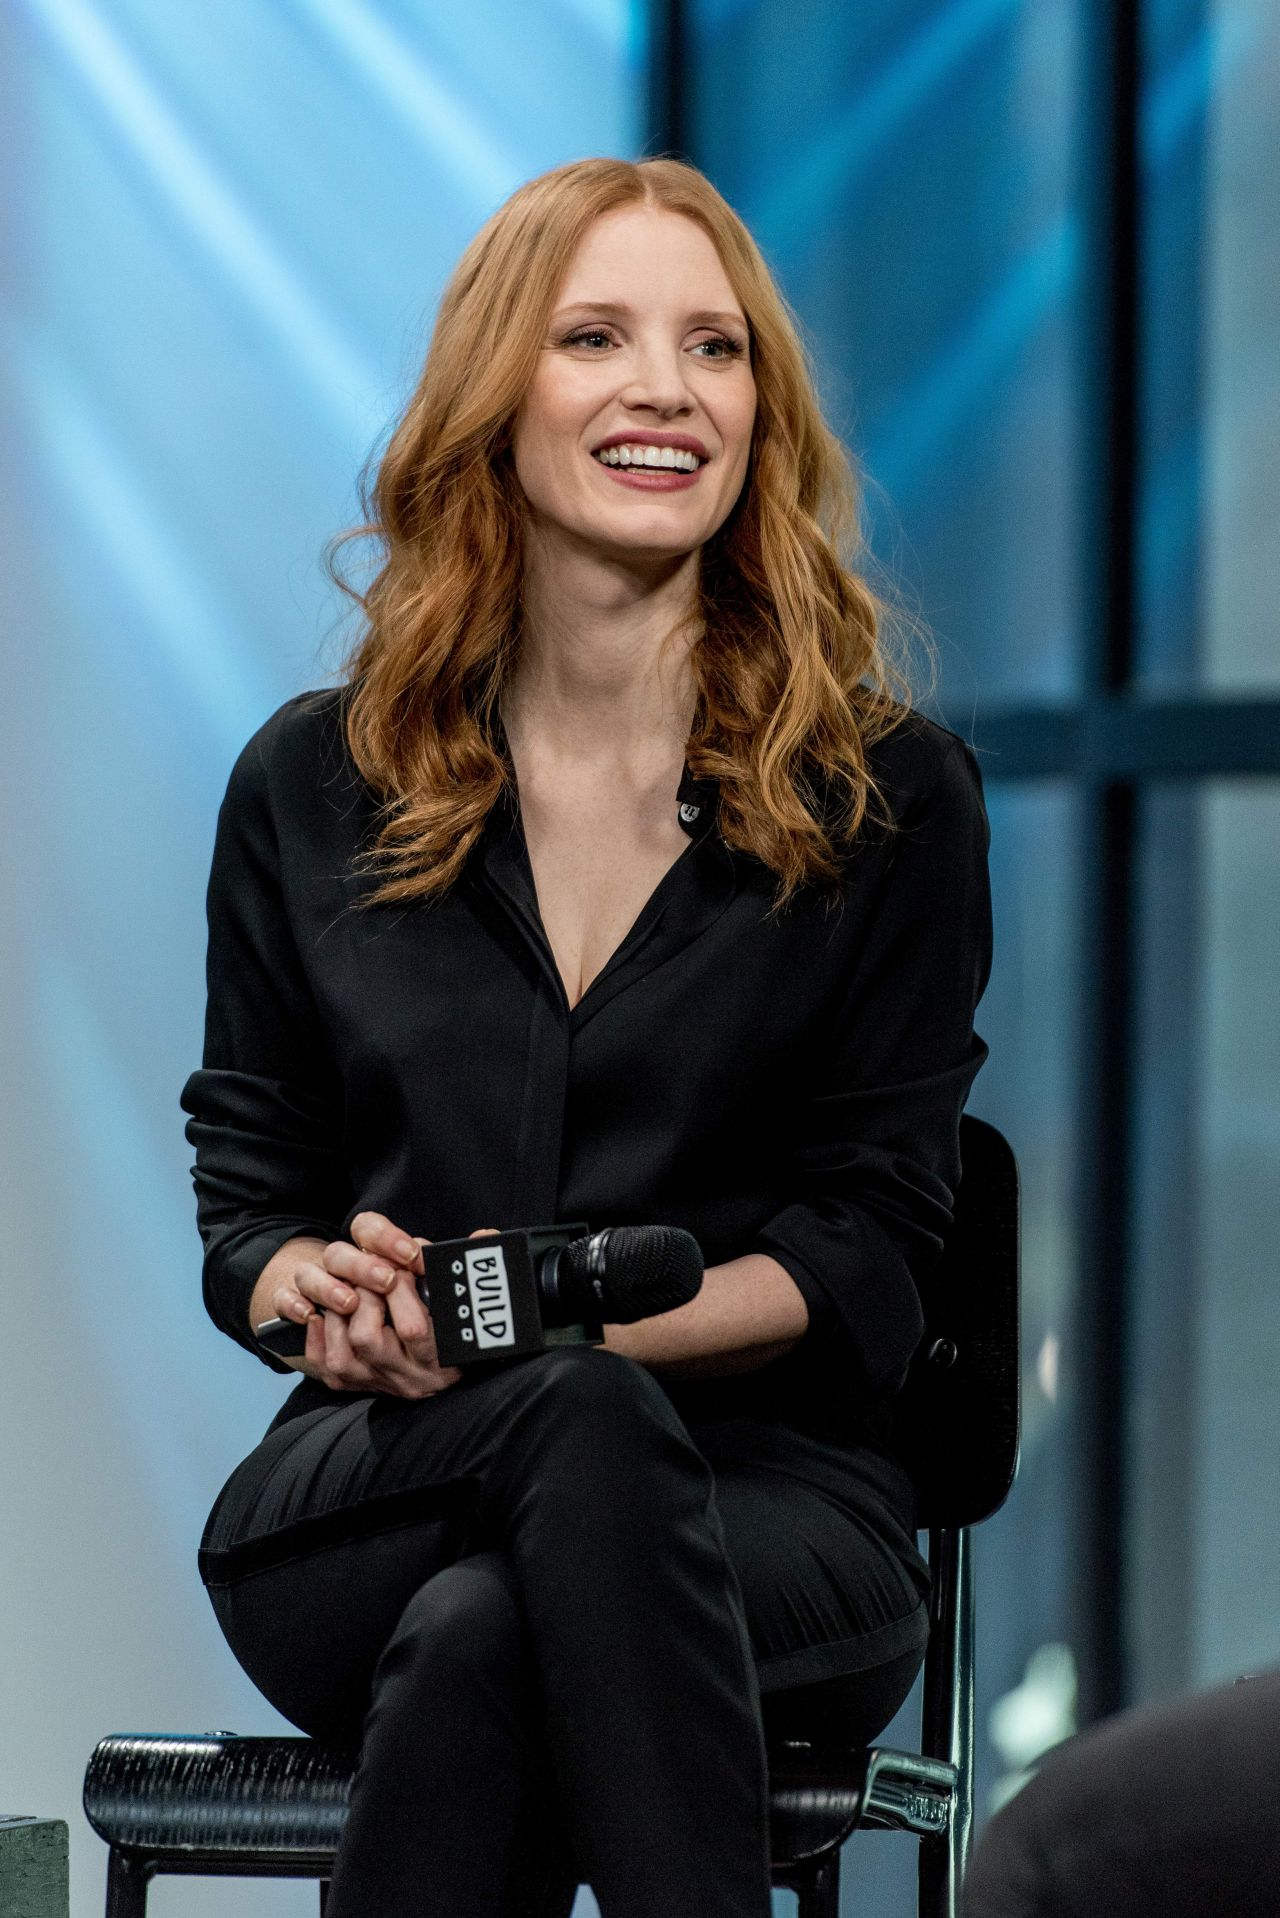 Jessica Chastain Build Speaker Series In NYC 321 2017